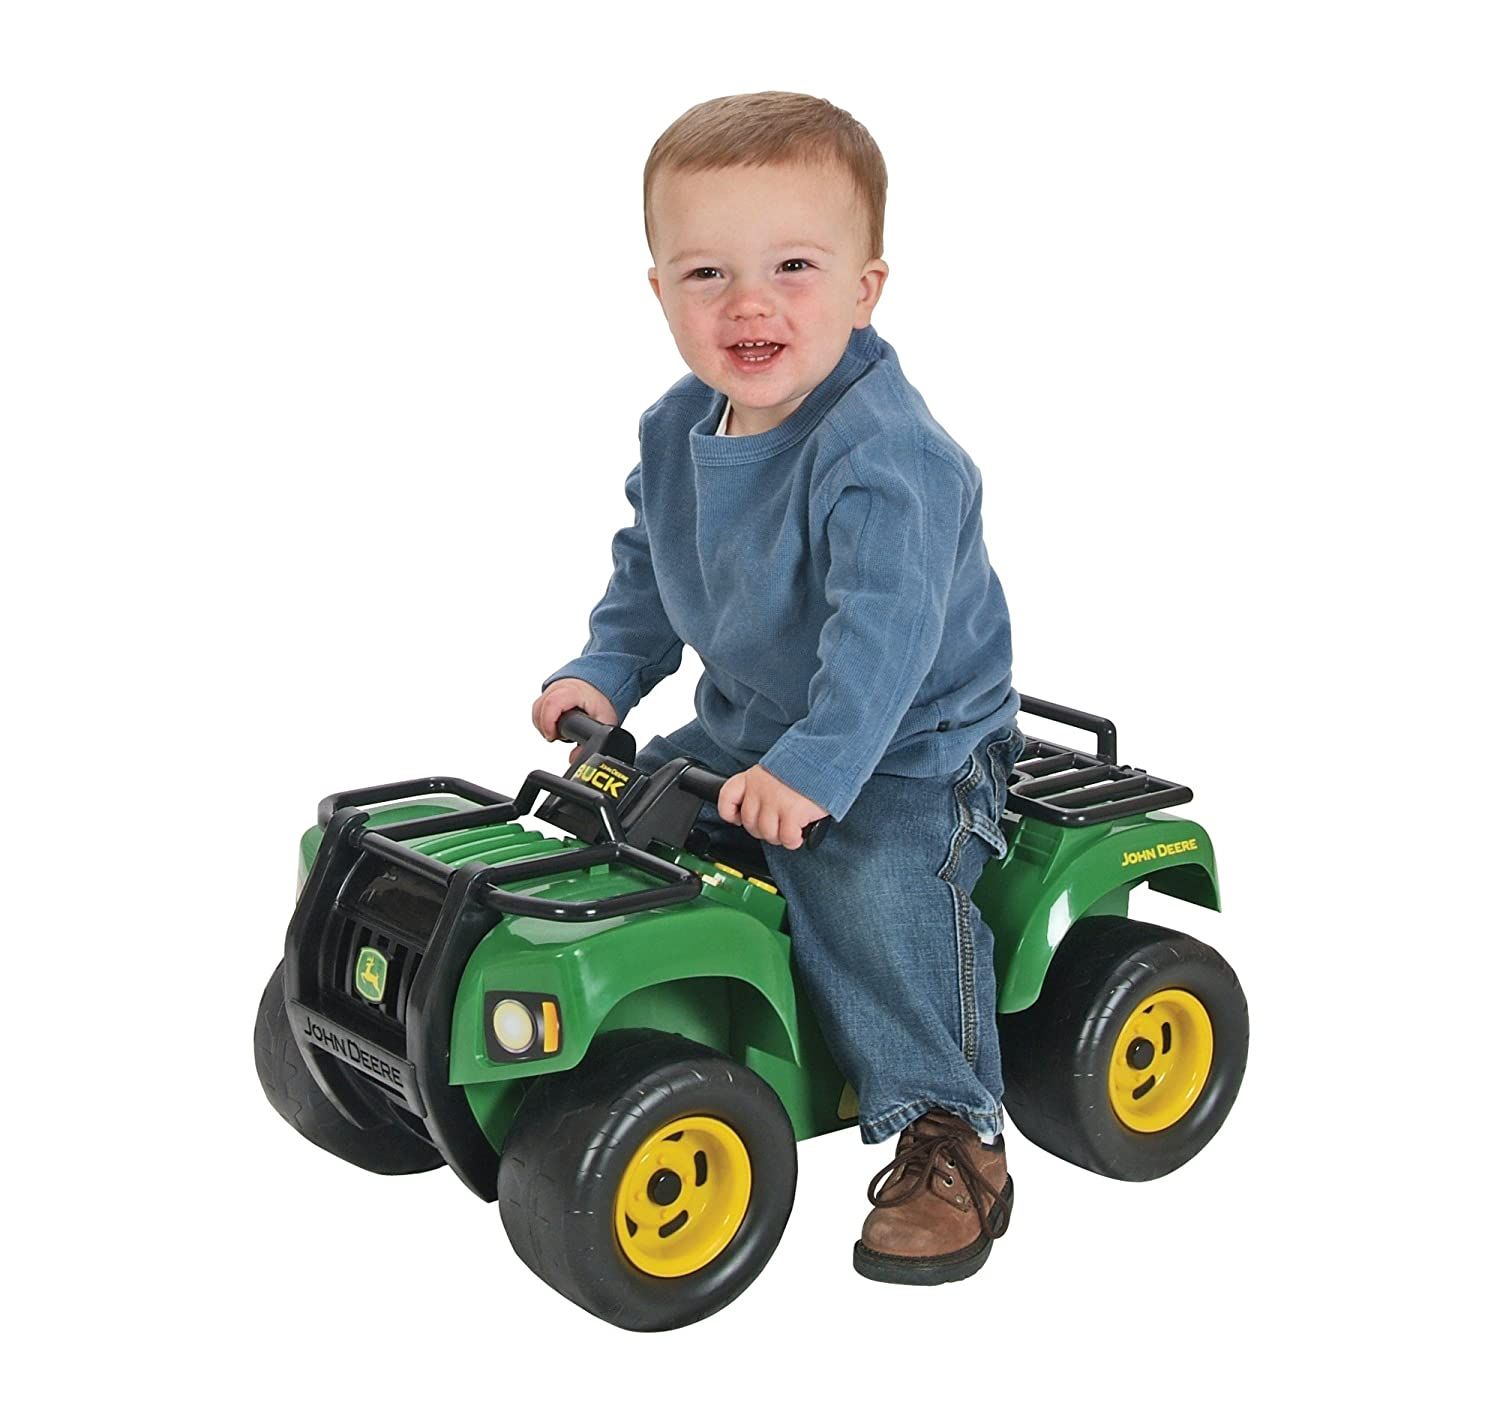 John Deere Sit and Scoot ATV Amazon Toys & Games